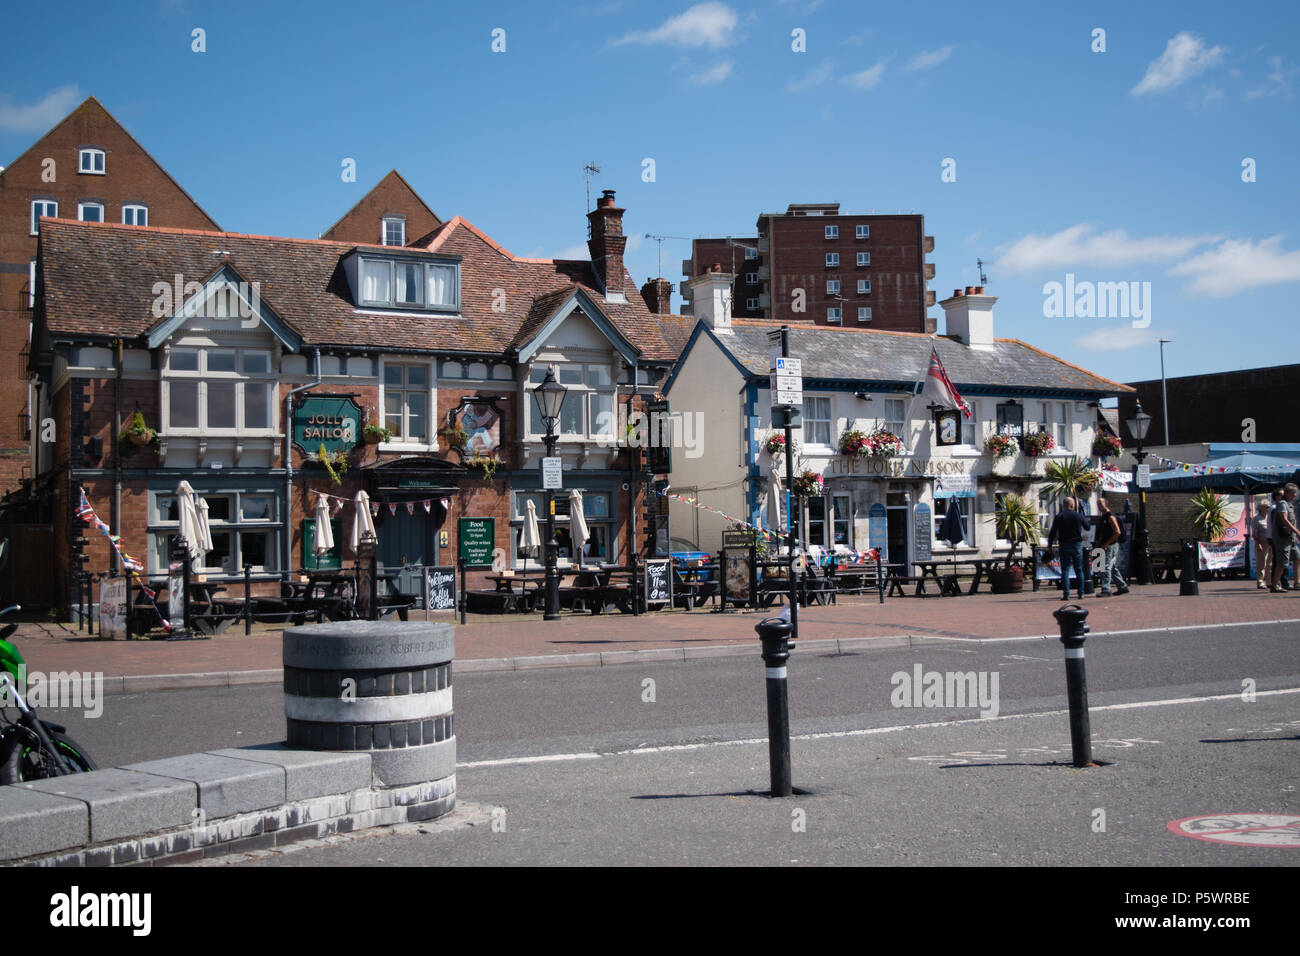 On the Quayside at Poole Harbour showing the Jolly Sailor and The Lord Nelson public houses on a hot Summers morning before opening time. - Stock Image